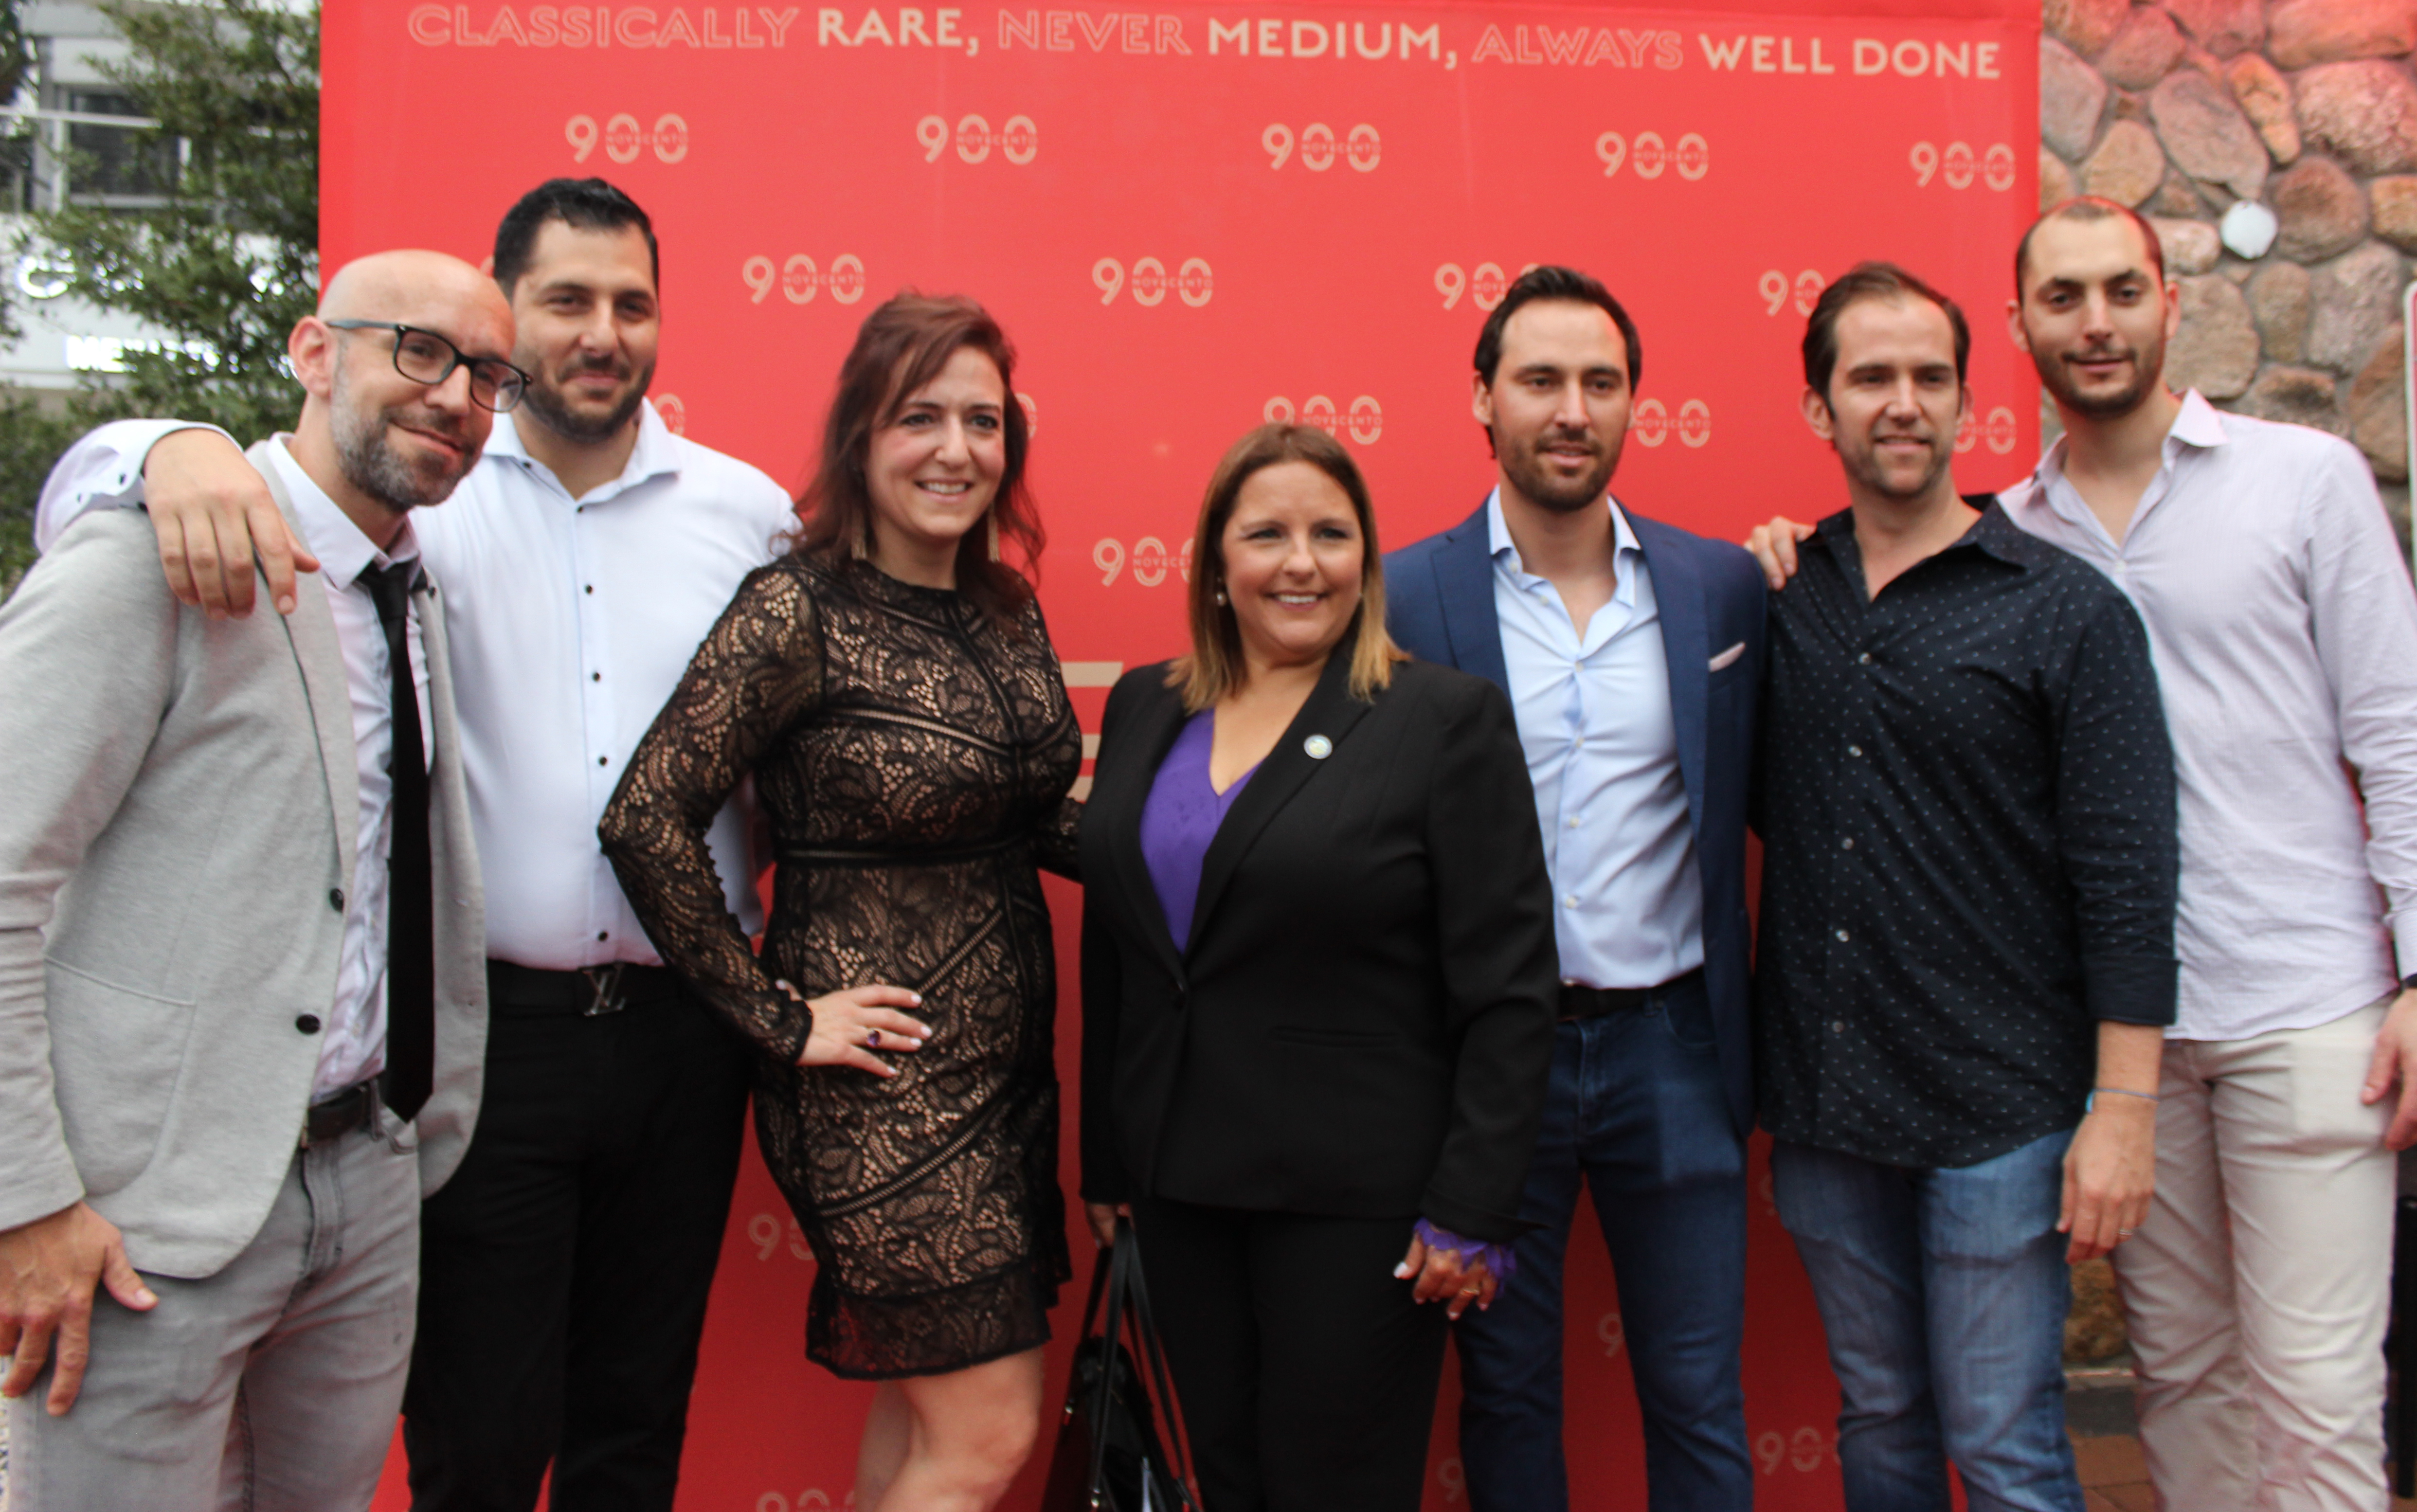 Doral Chamber of Commerce introduces Novecento Grand Opening, group photo outside.